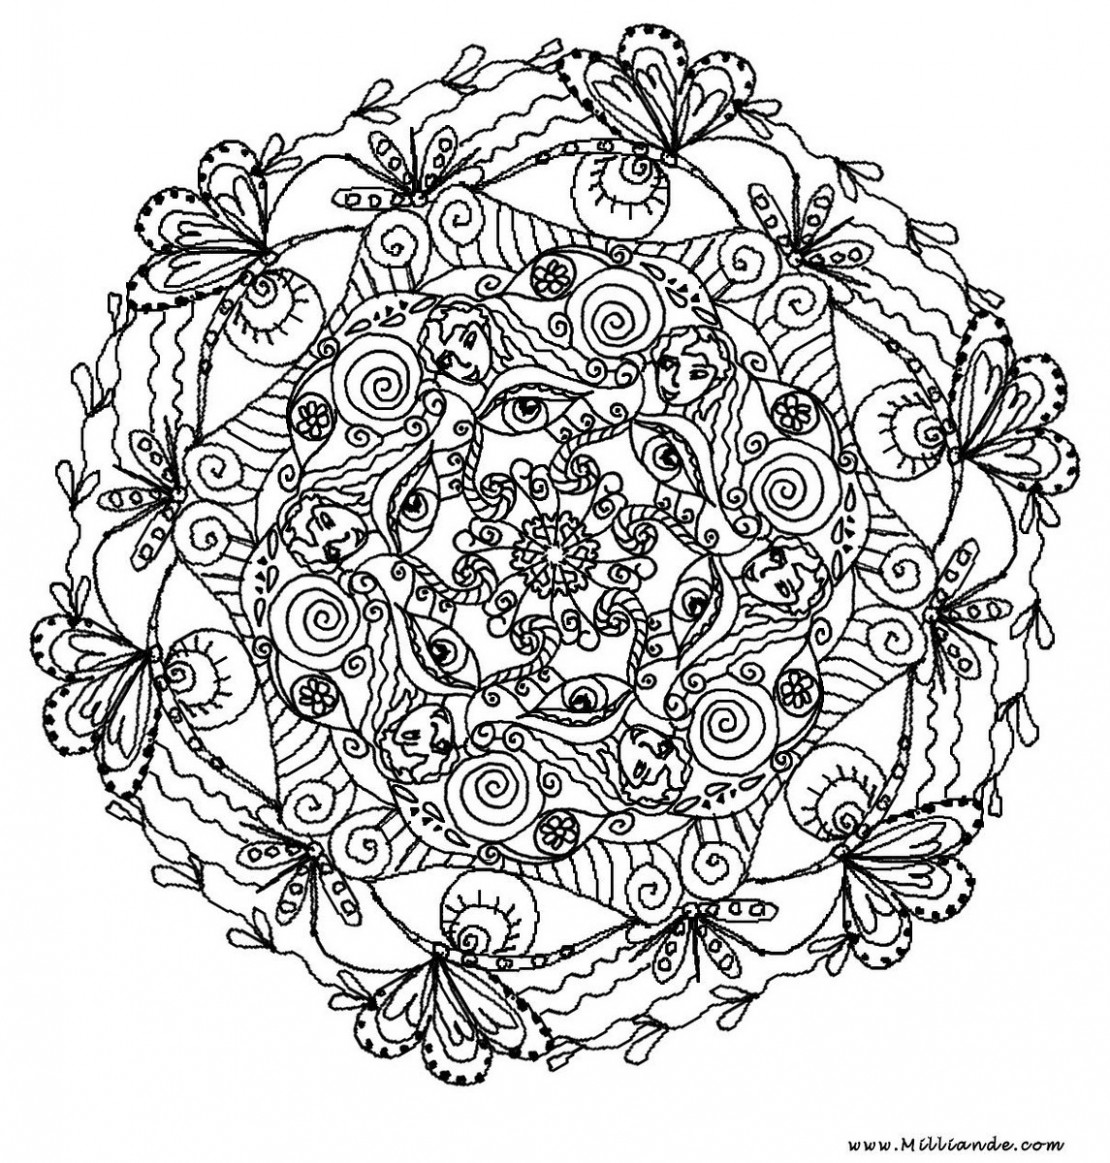 coloring pages s 39 place to be - Grown Coloring Pages Printable